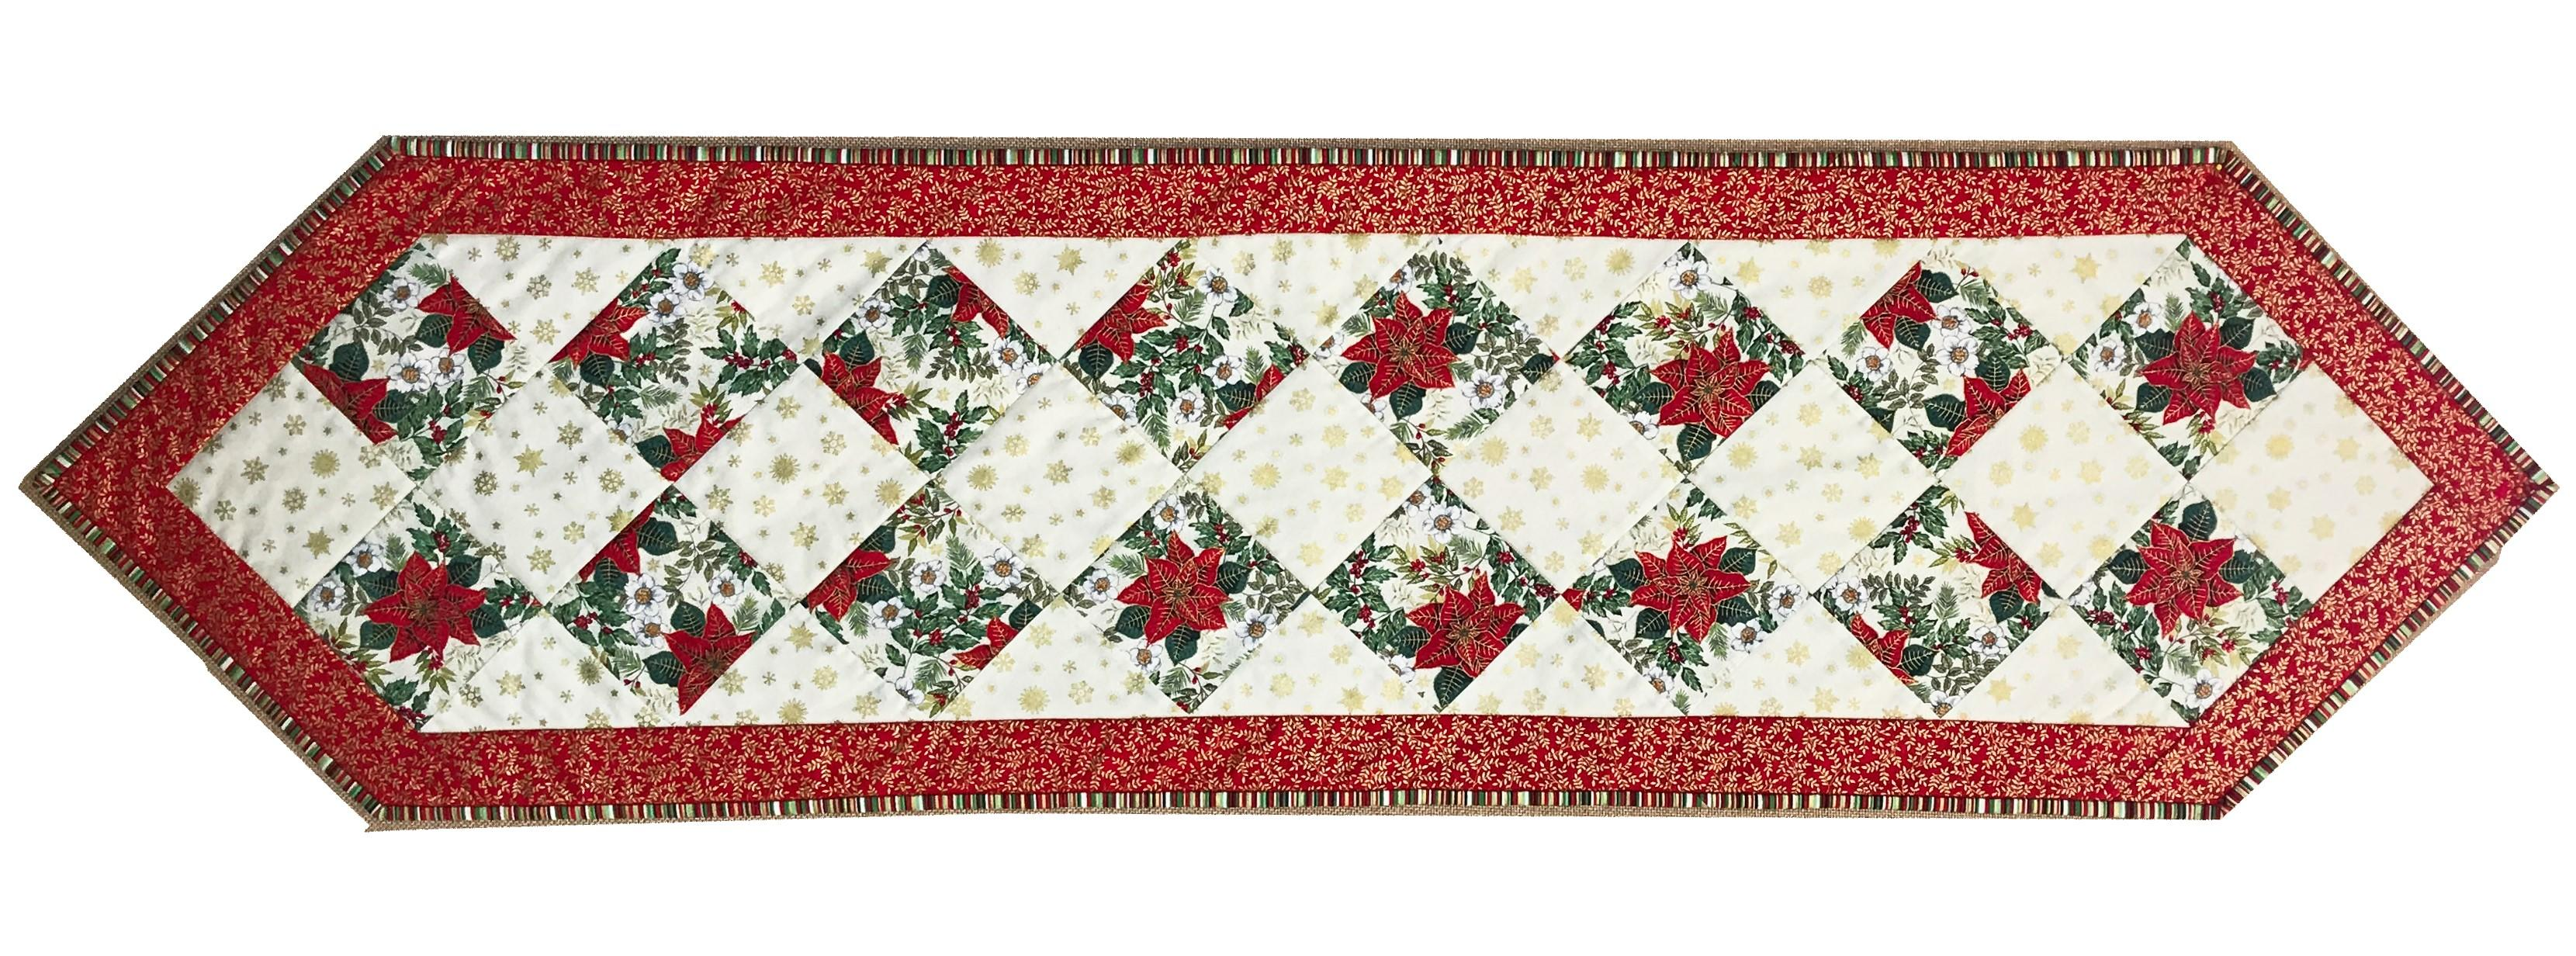 Christmas Table Runner Uk.Christmas Table Runner Kit